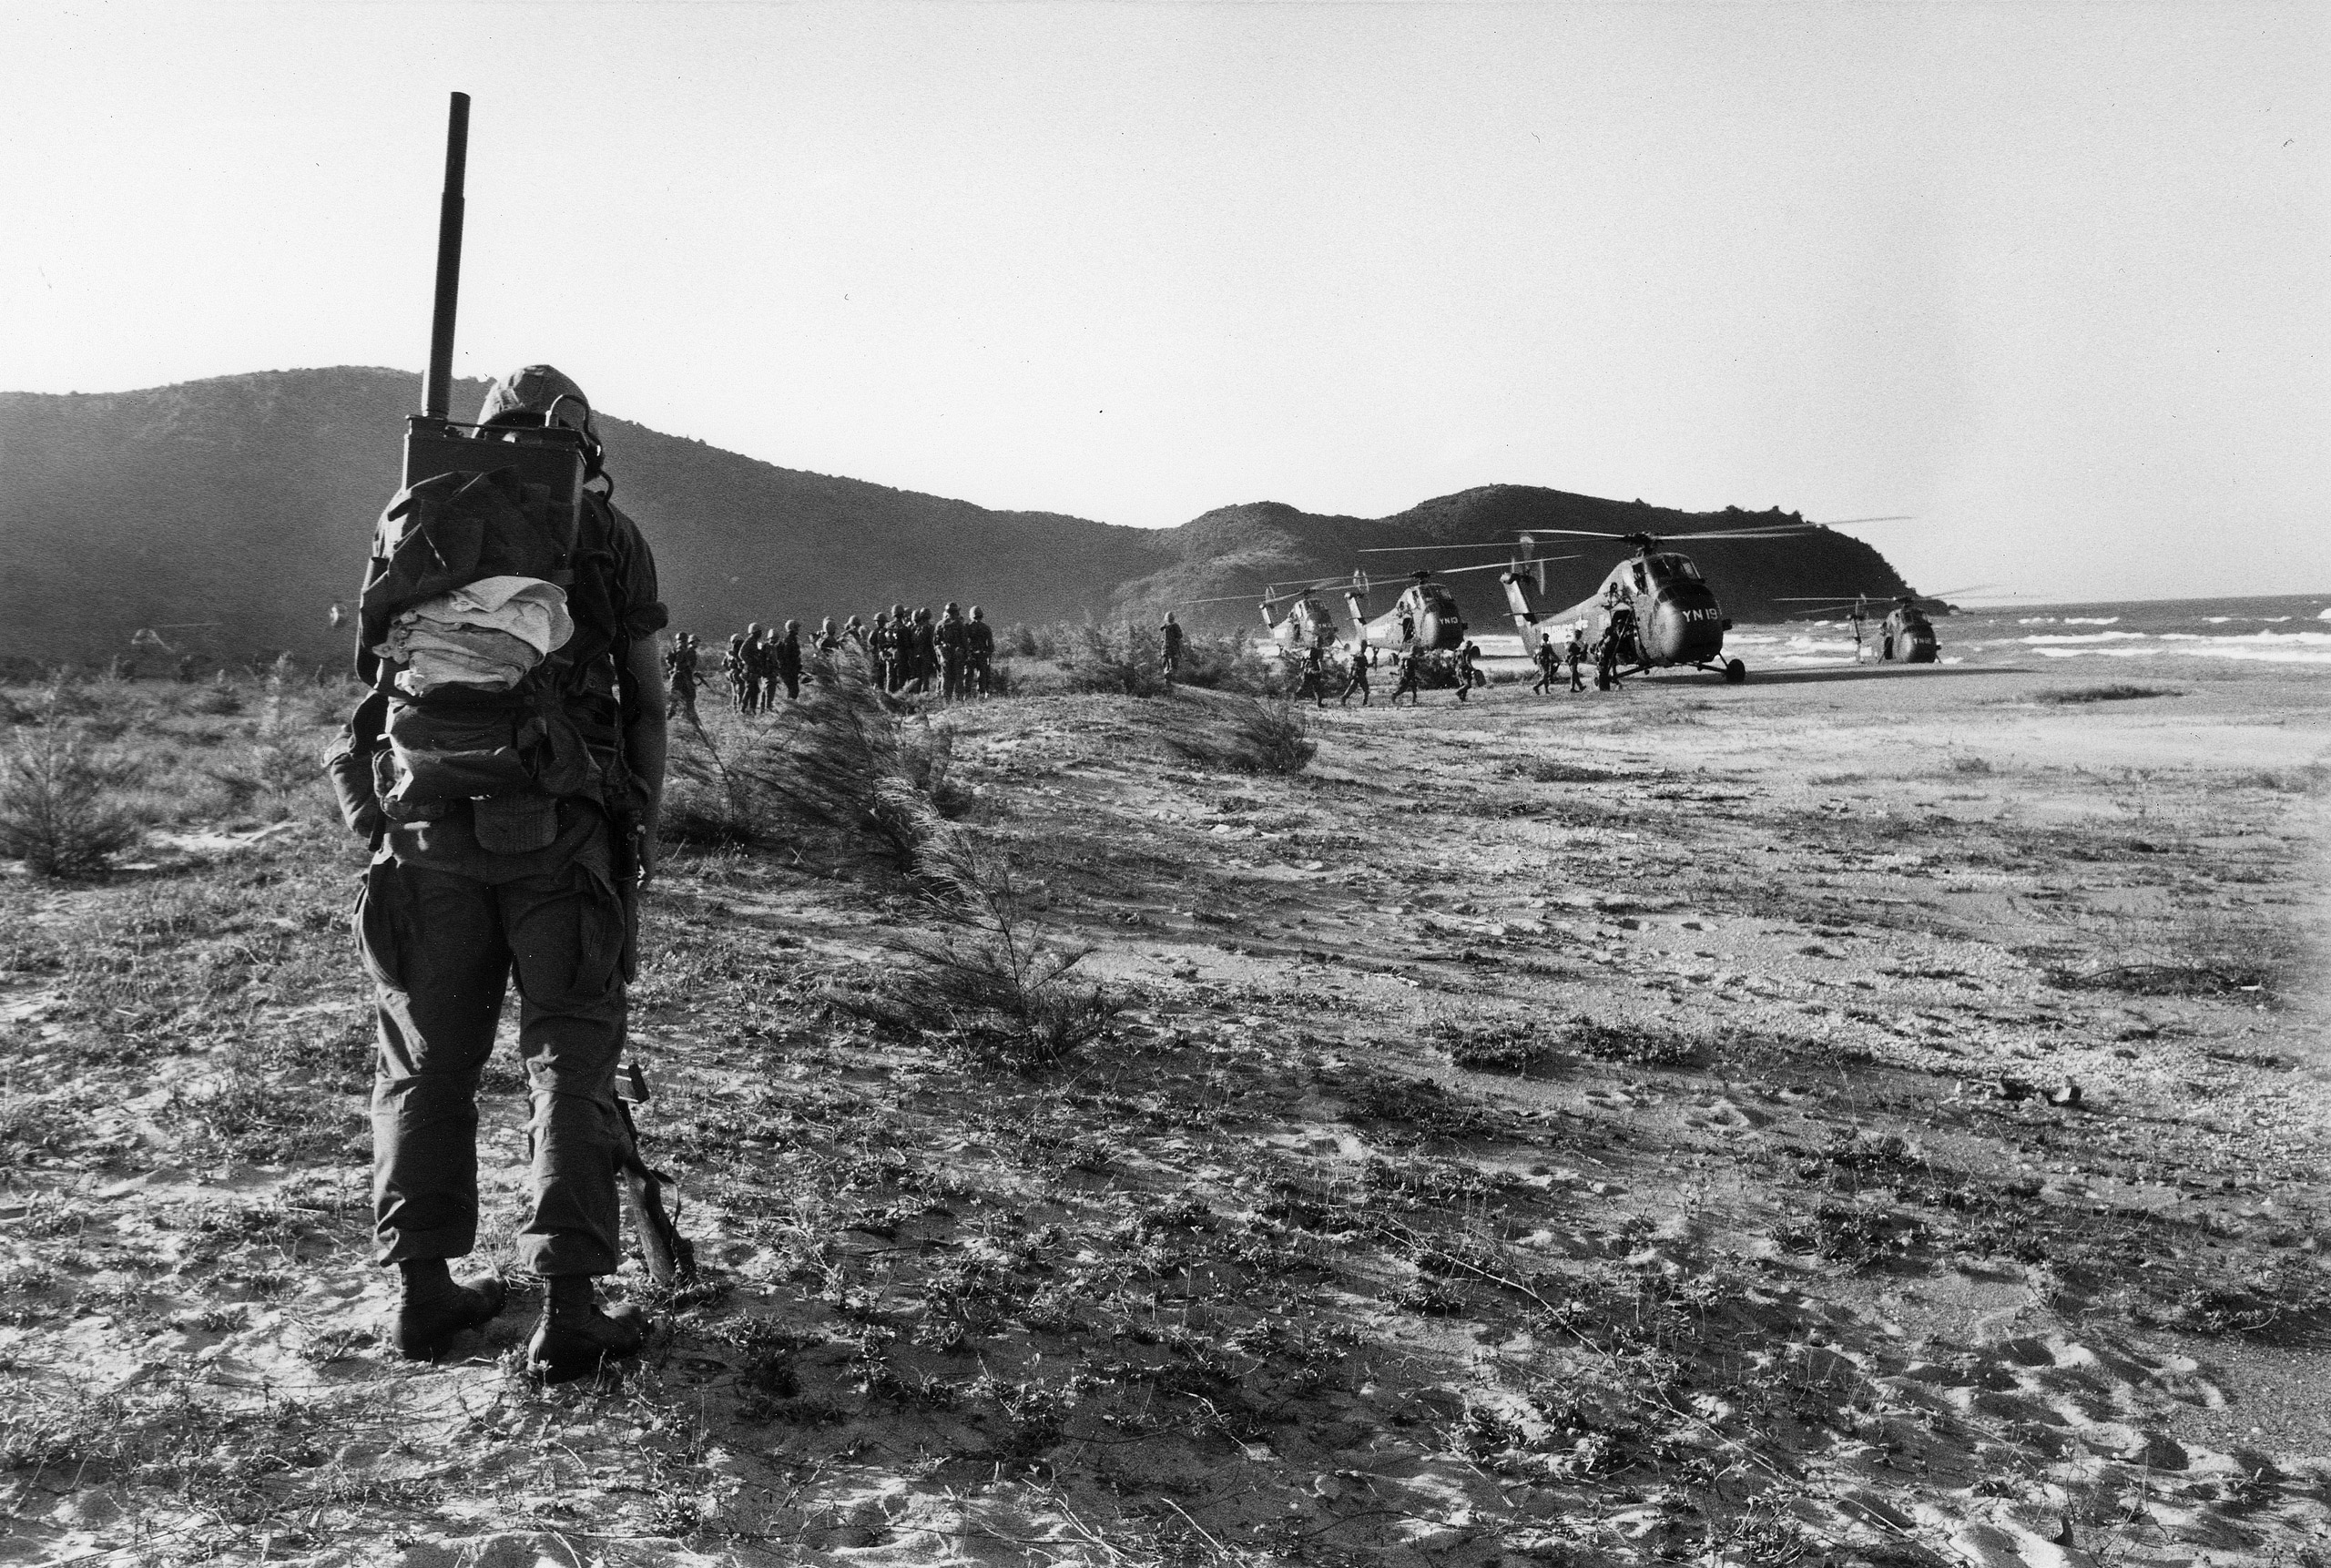 Marines wait to load helicopters, 1965.